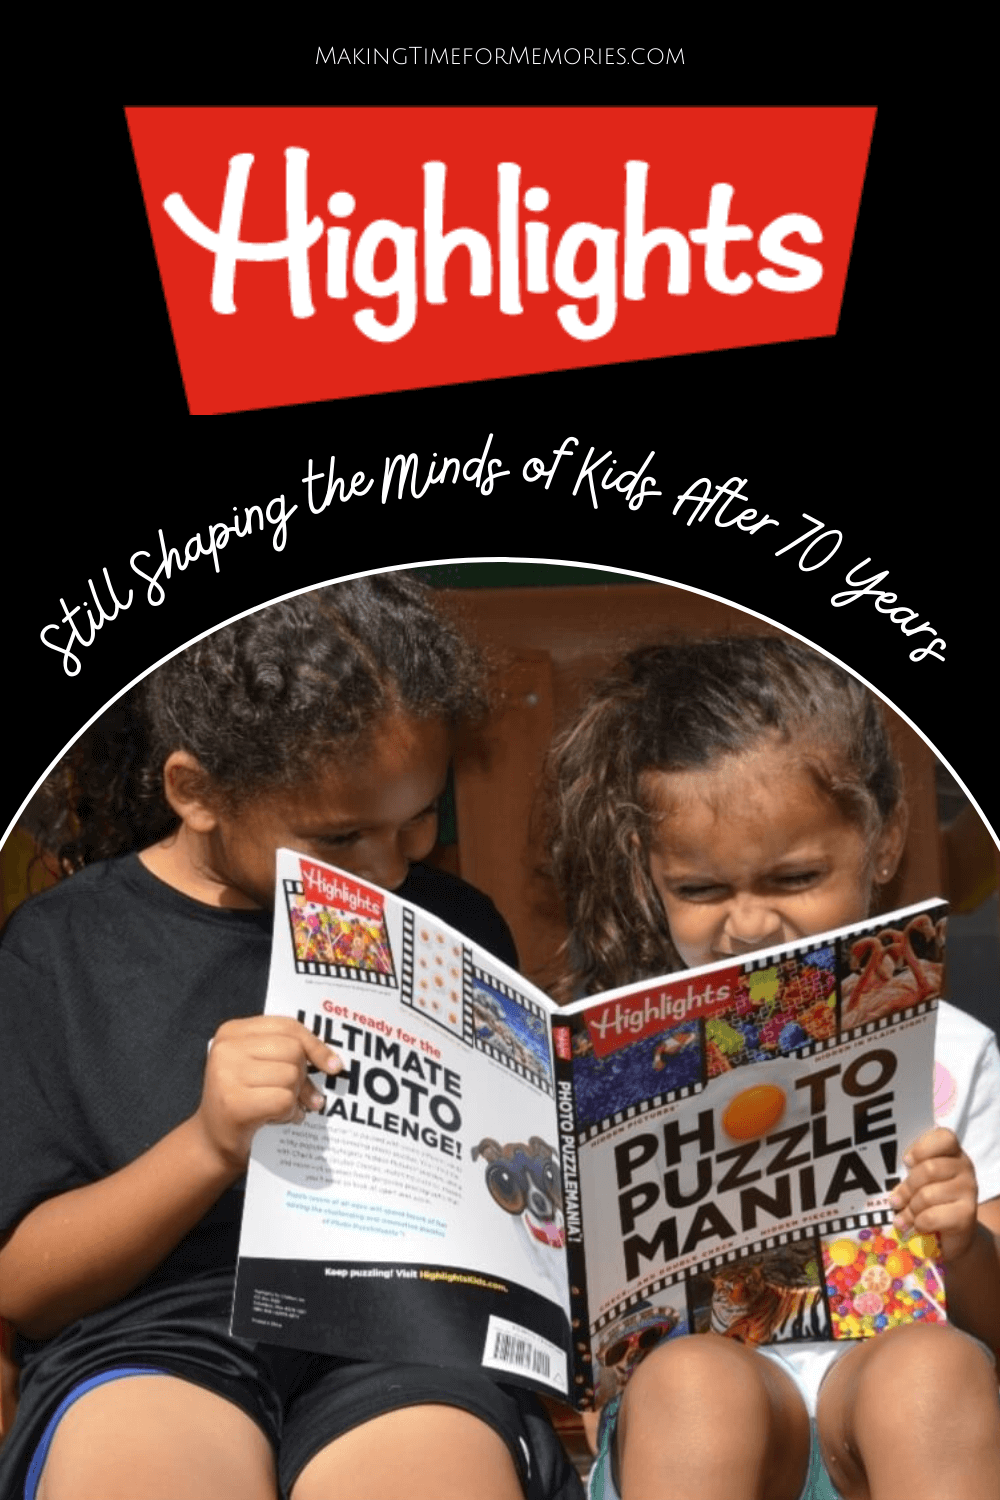 kids looking at a Highlights Photo Puzzle Mania book